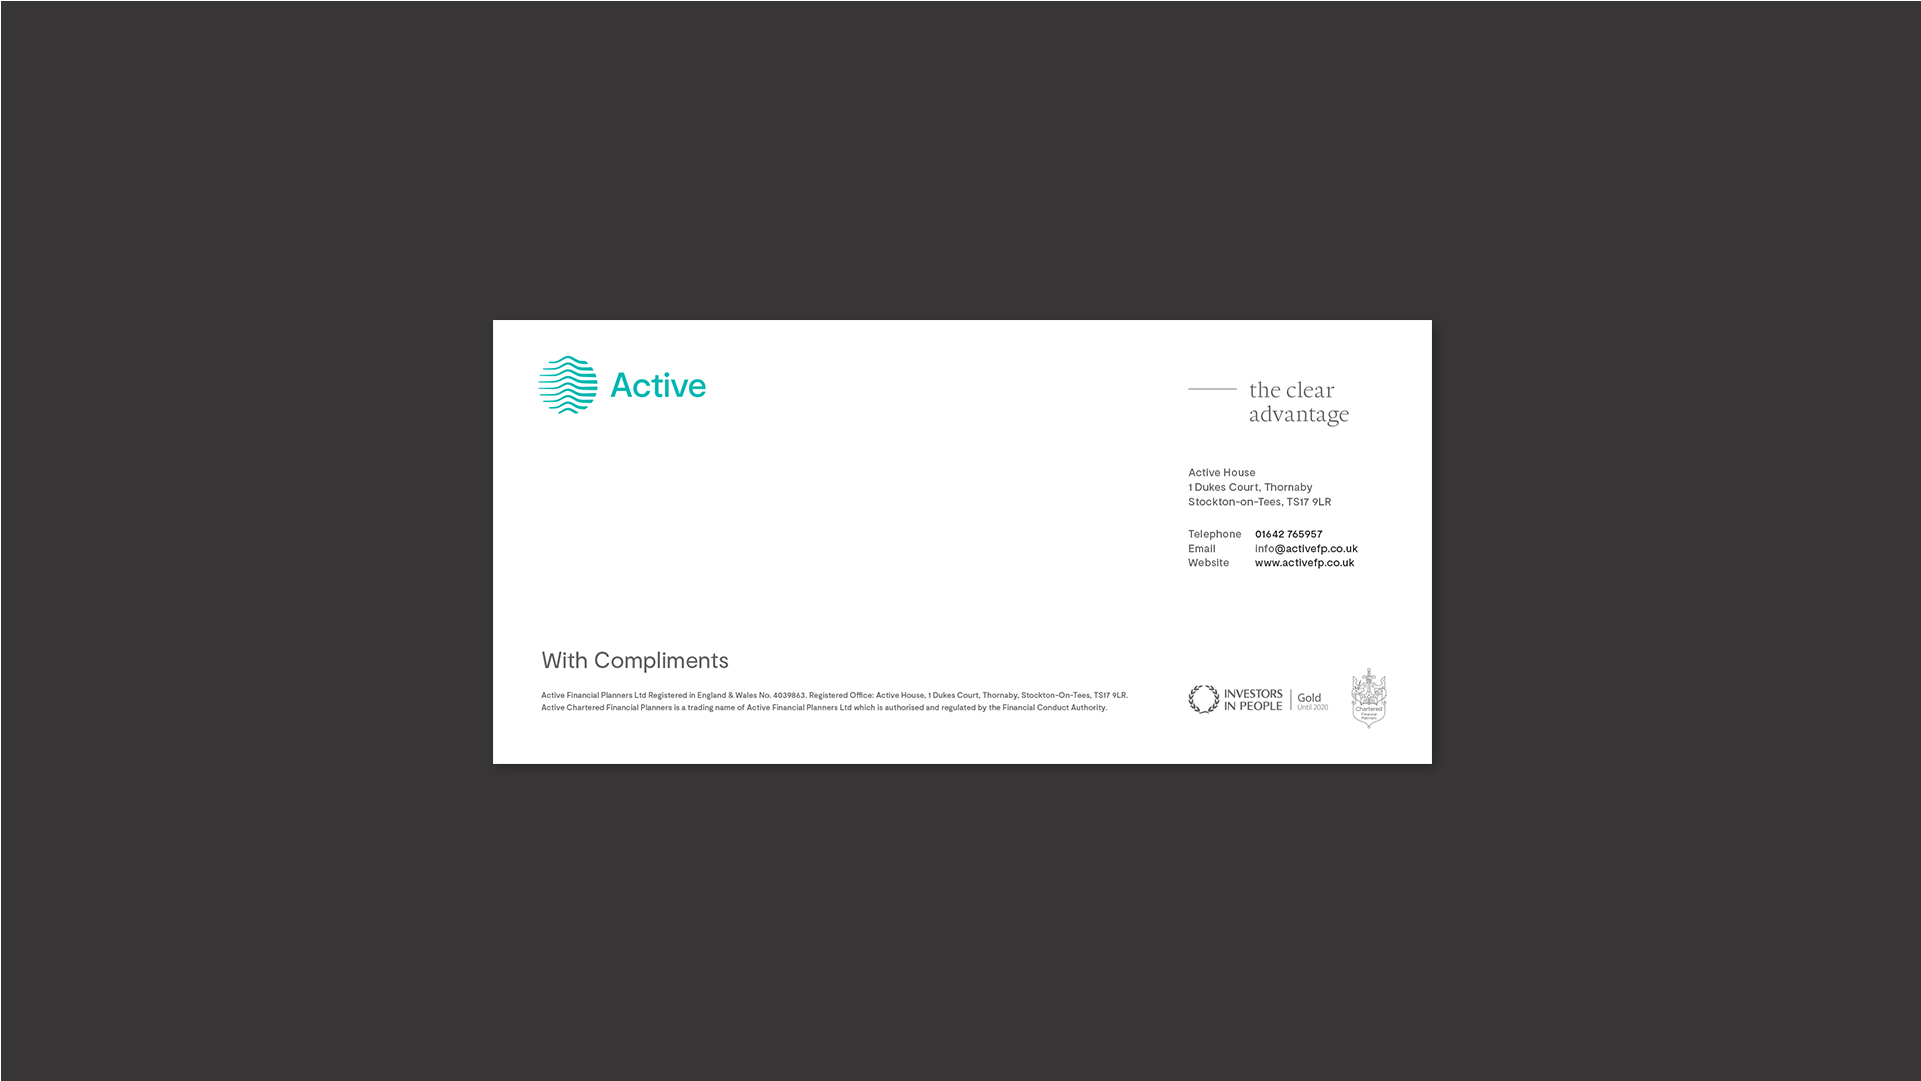 Active - BetterBrandBuilder™ DELIVER - Stationery Design